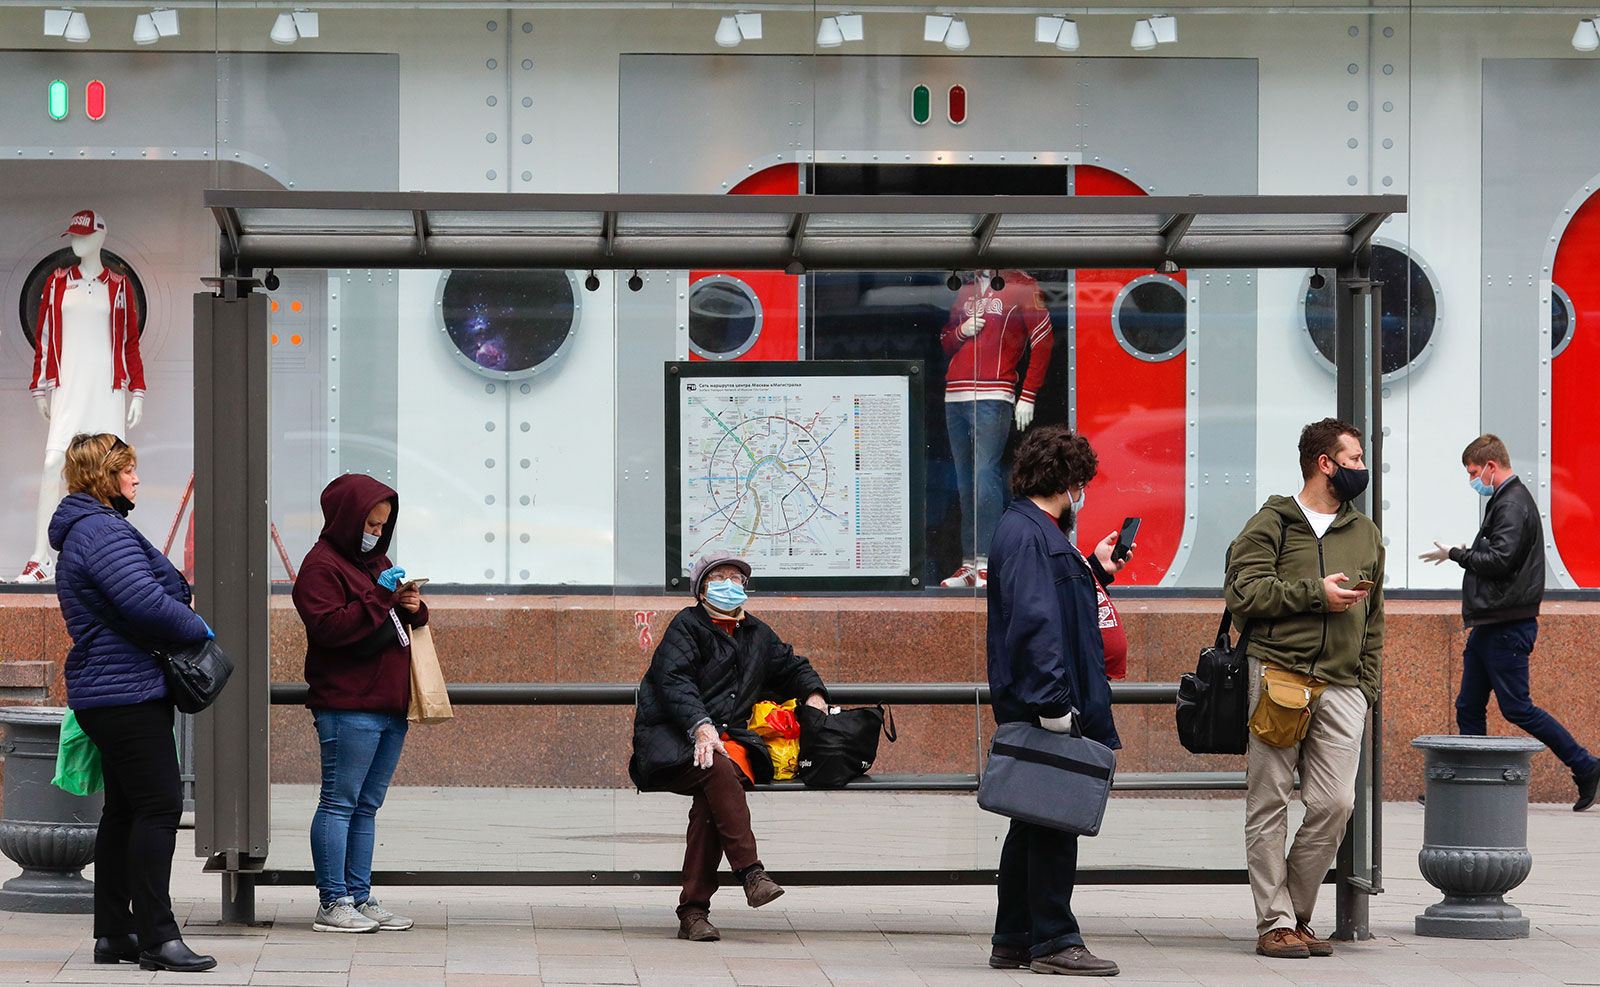 People wait at a public transport stop amid the pandemic in Moscow on May 20.